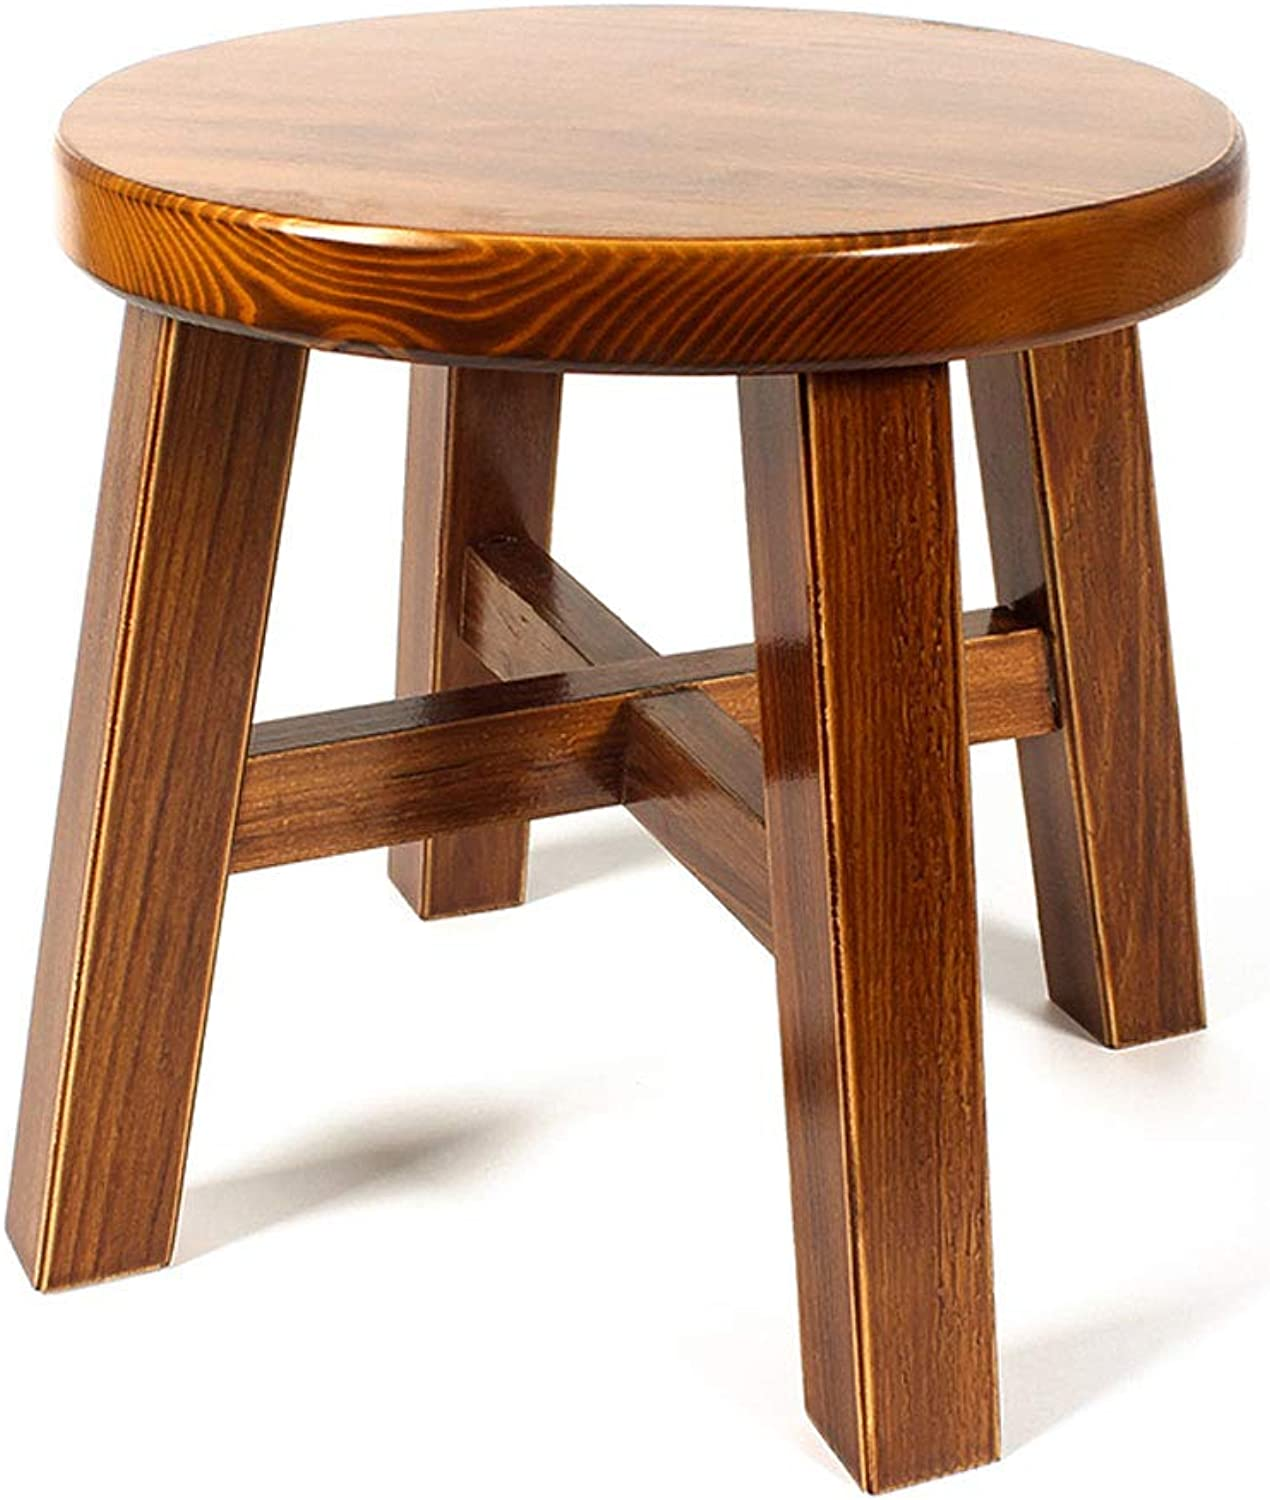 Household Stool Solid Wood Round Solid color Simple Living Room Small Bench V (color   A, Size   L28CMXW28CMXH27CM)